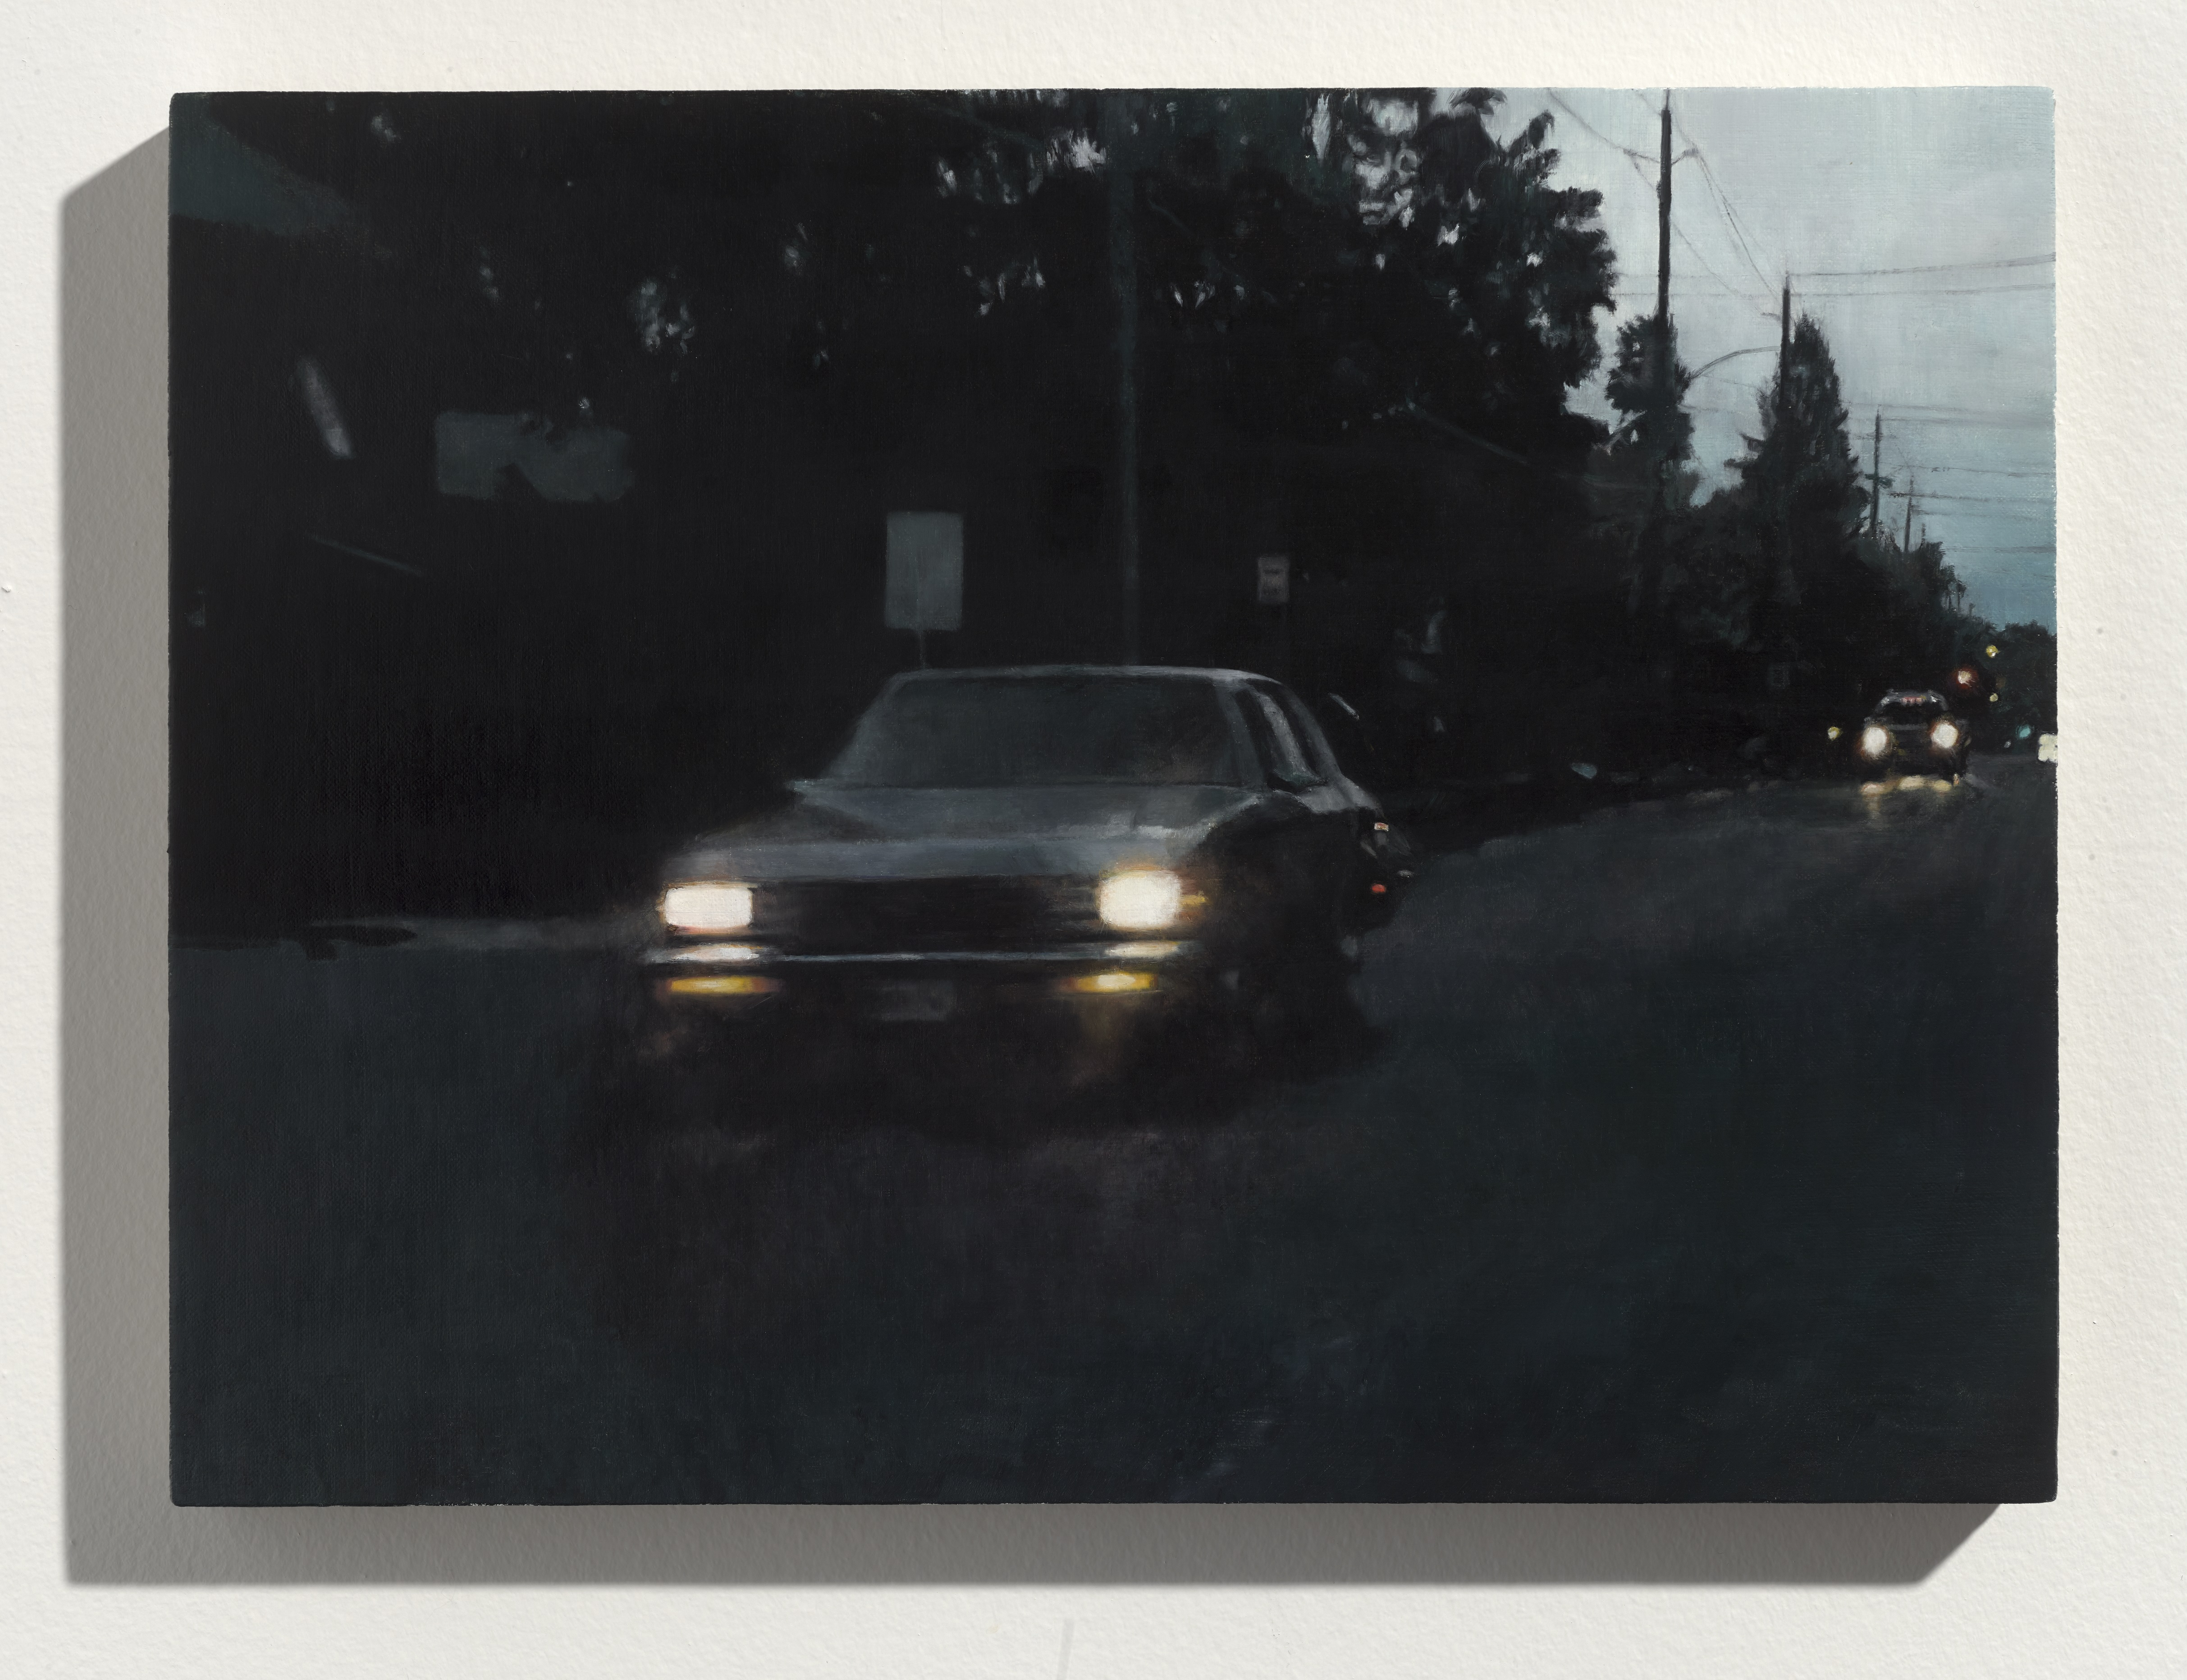 Painting of a car, with headlights on, driving down a dark street with trees silhouetted in the background.